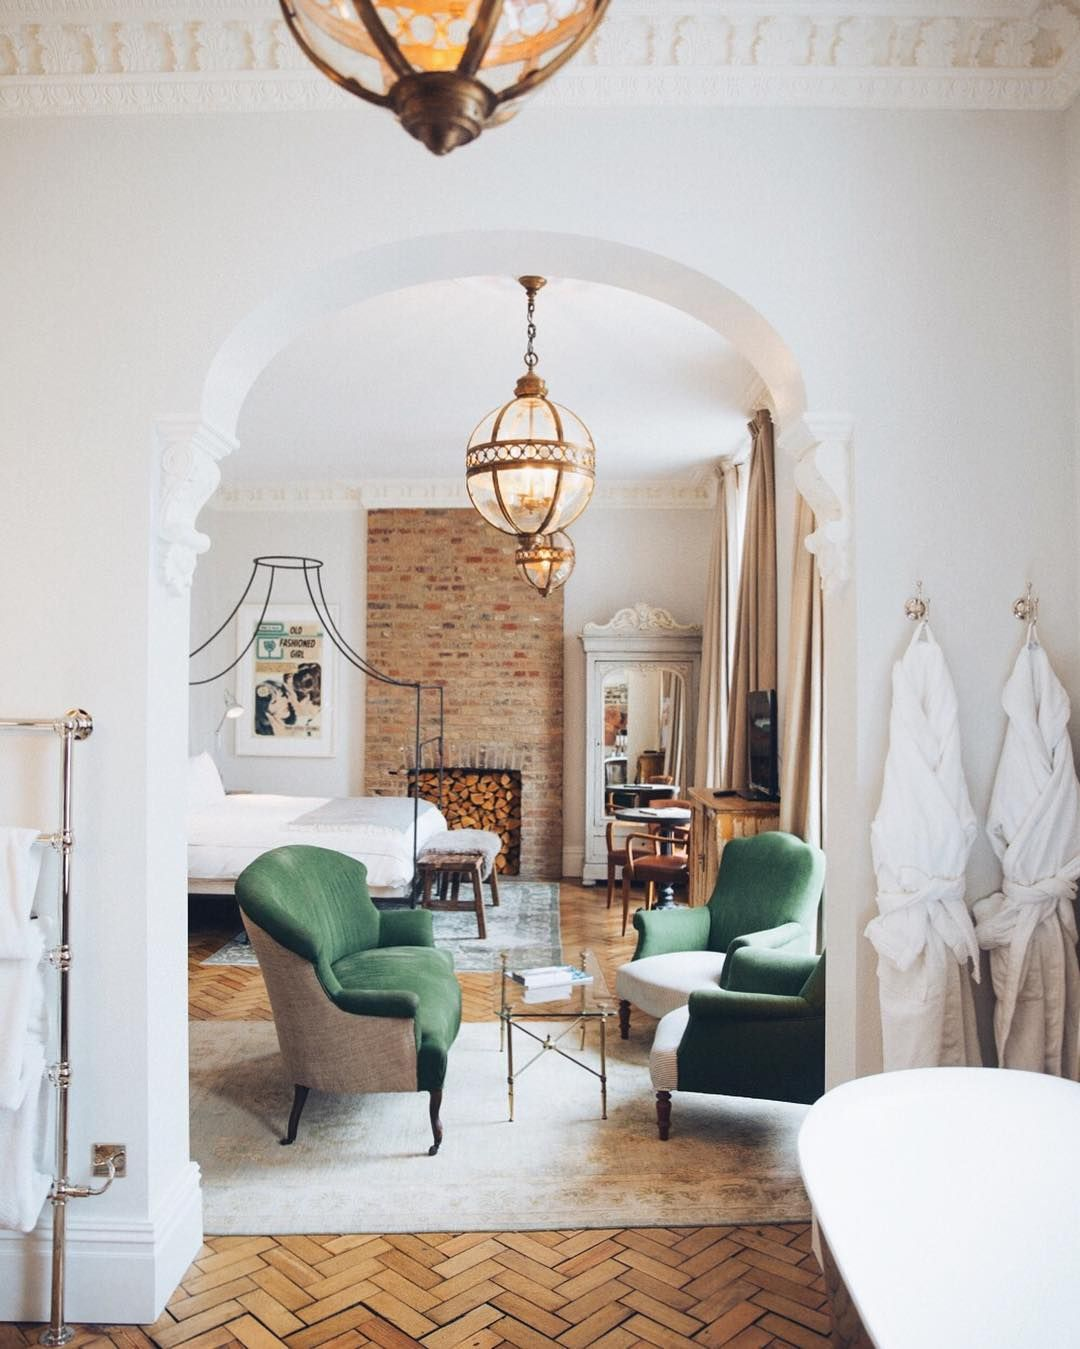 pinpepi s on deco | pinterest | interiors, green furniture and